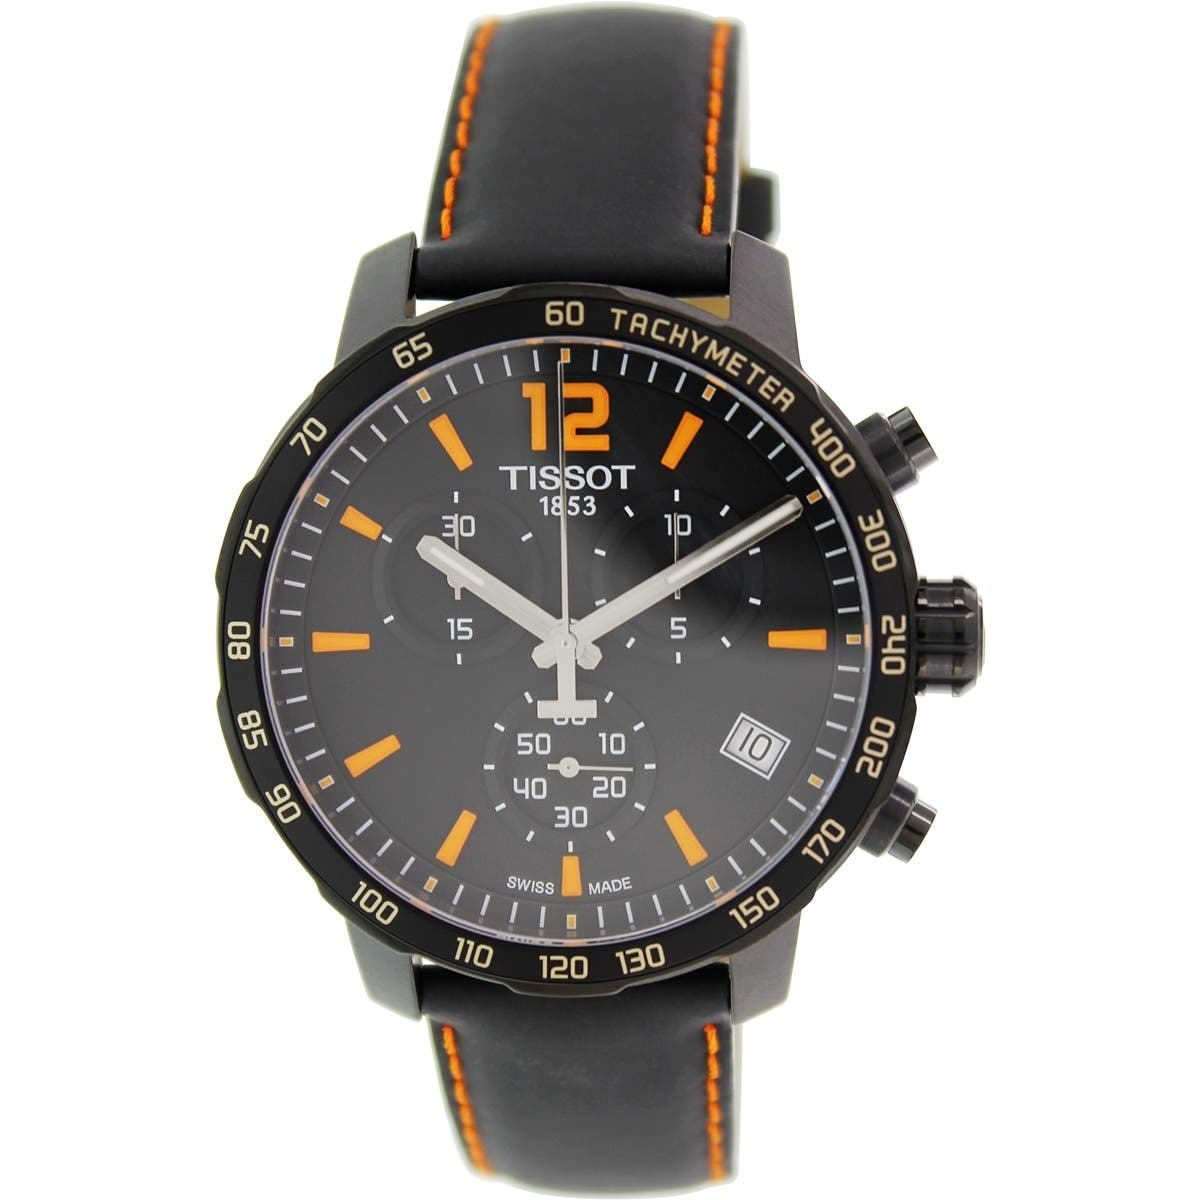 men s watches find great watches deals shopping at 12760 | tissot mens t0954173605700 quickster chronograph black leather watch b25390d9 edb7 48fc 9dcb bdb91f71695e impolicy medium